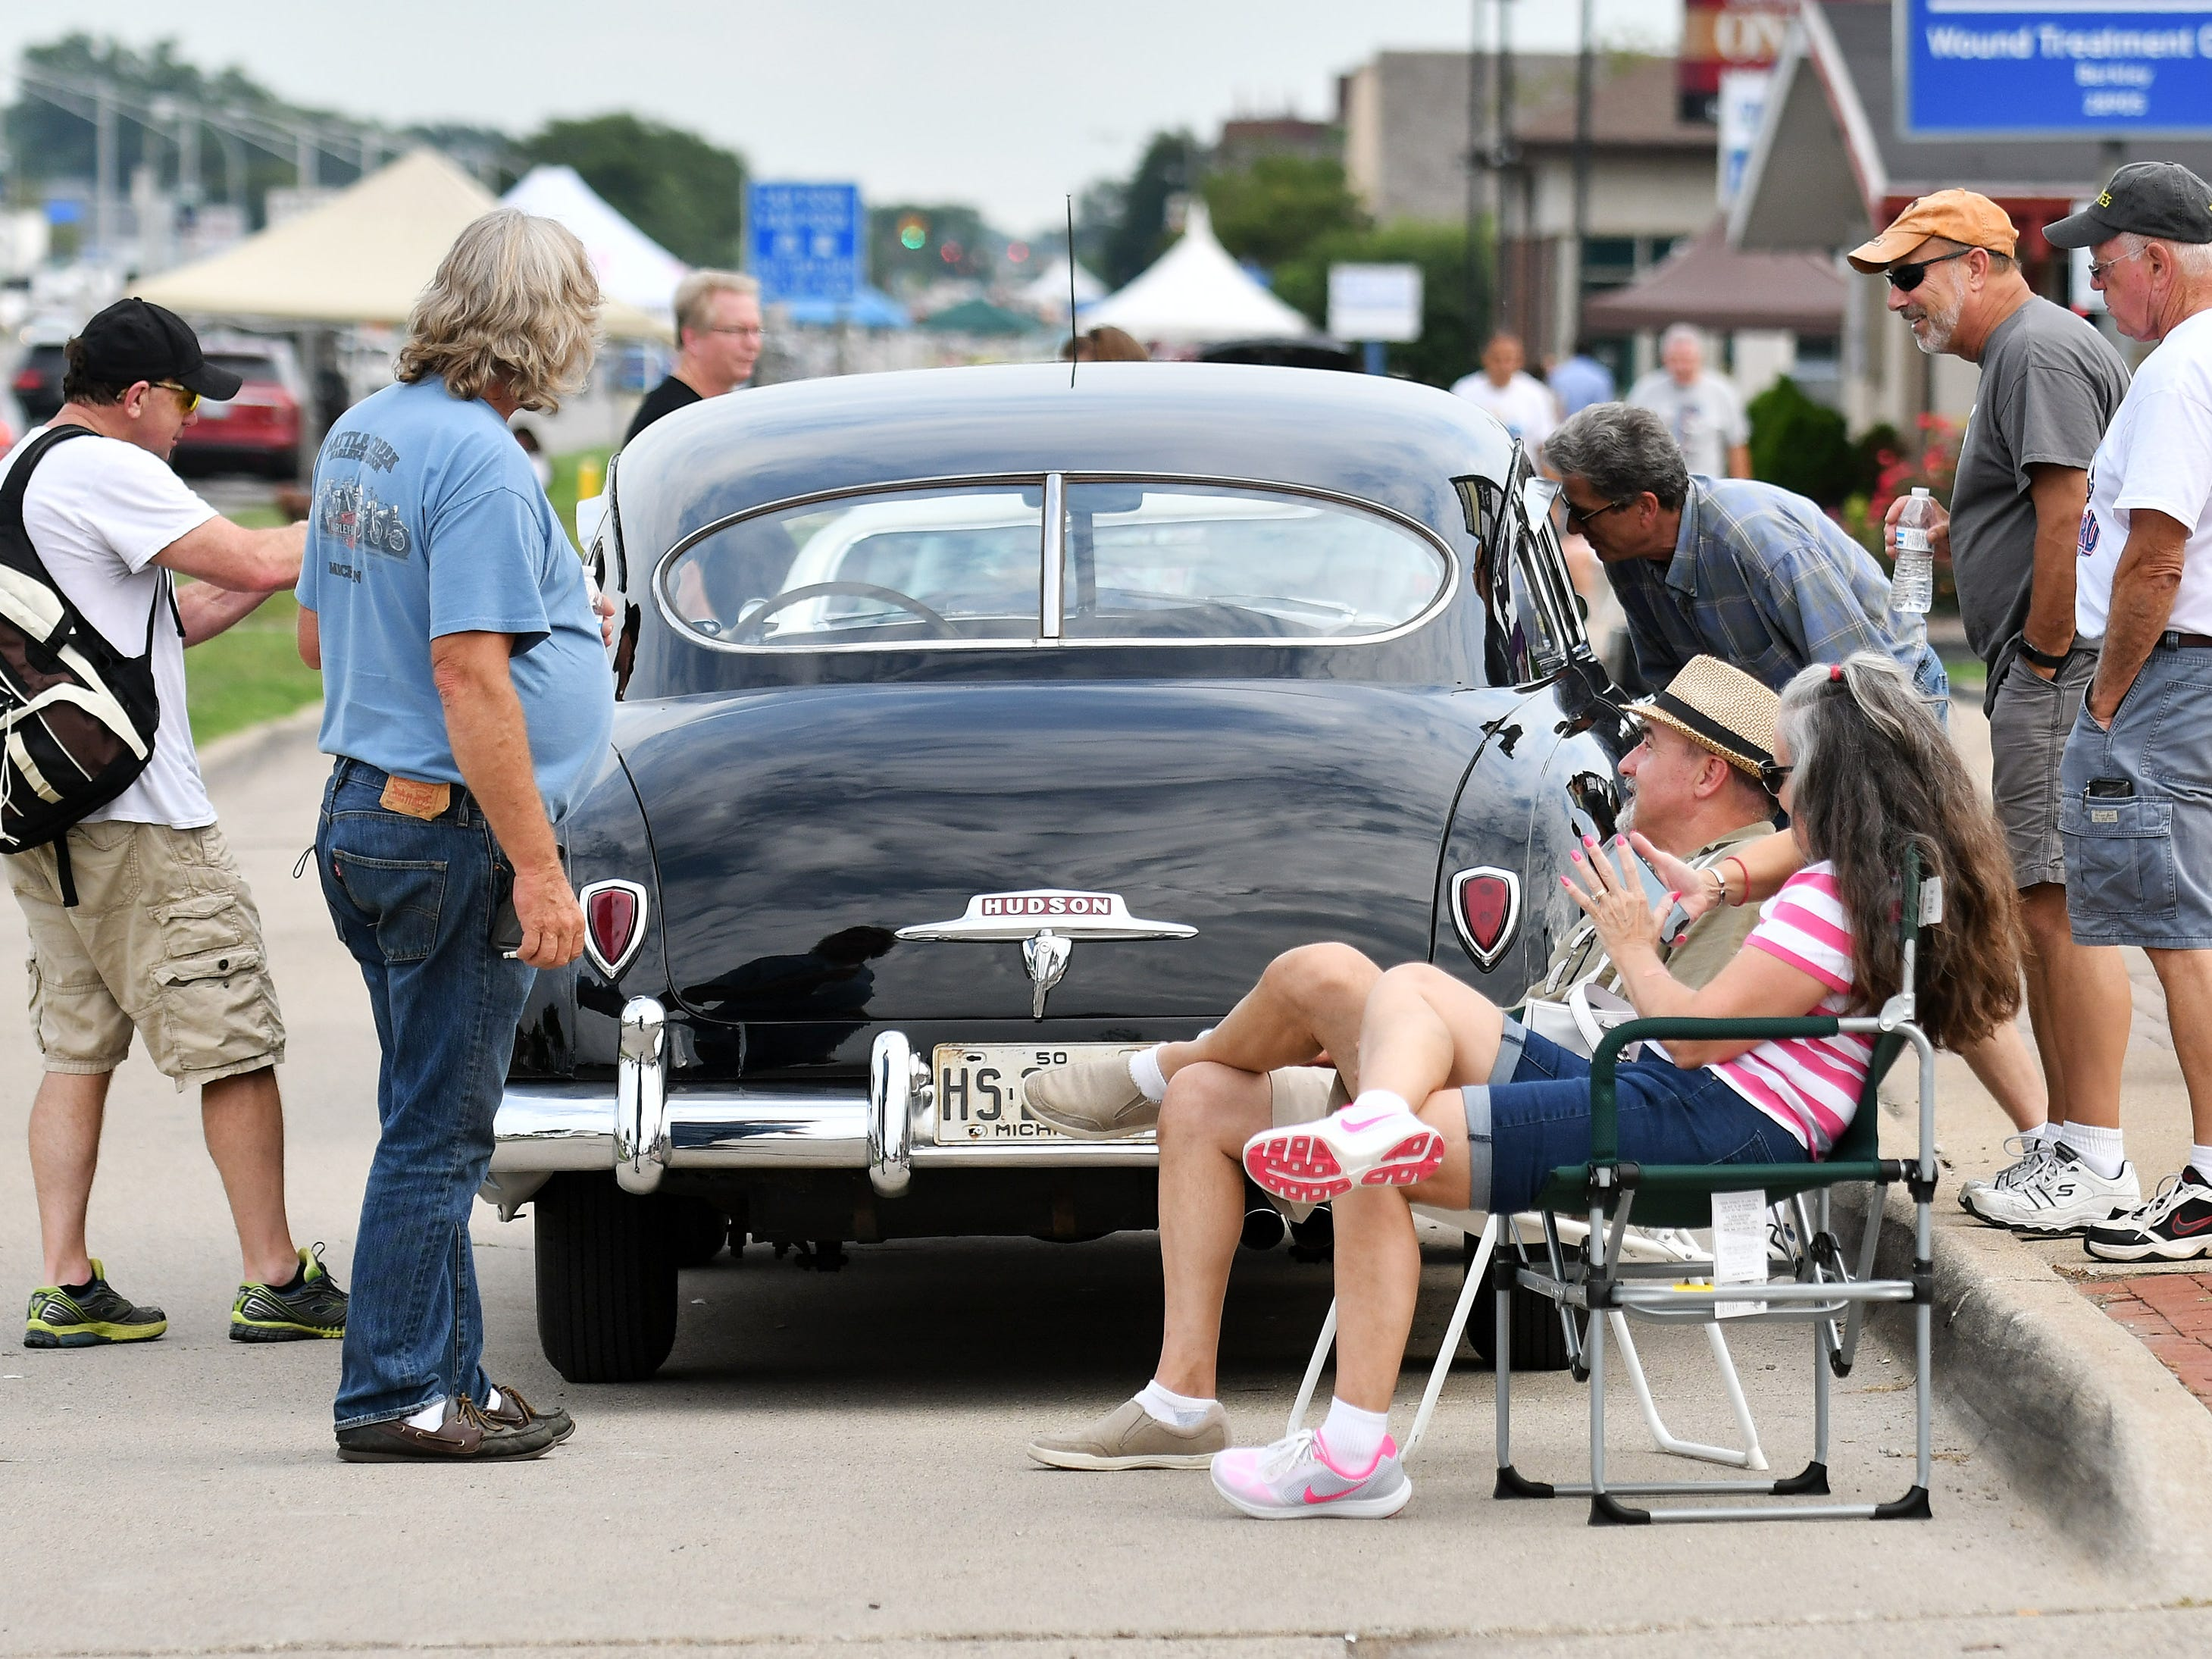 People check out the 1950 Hudson Super Six belonging to Heidi and Duane Sabella, seated at right, of New Baltimore parked along Woodward in Berkley, Mich. on Friday, Aug. 17, 2018.